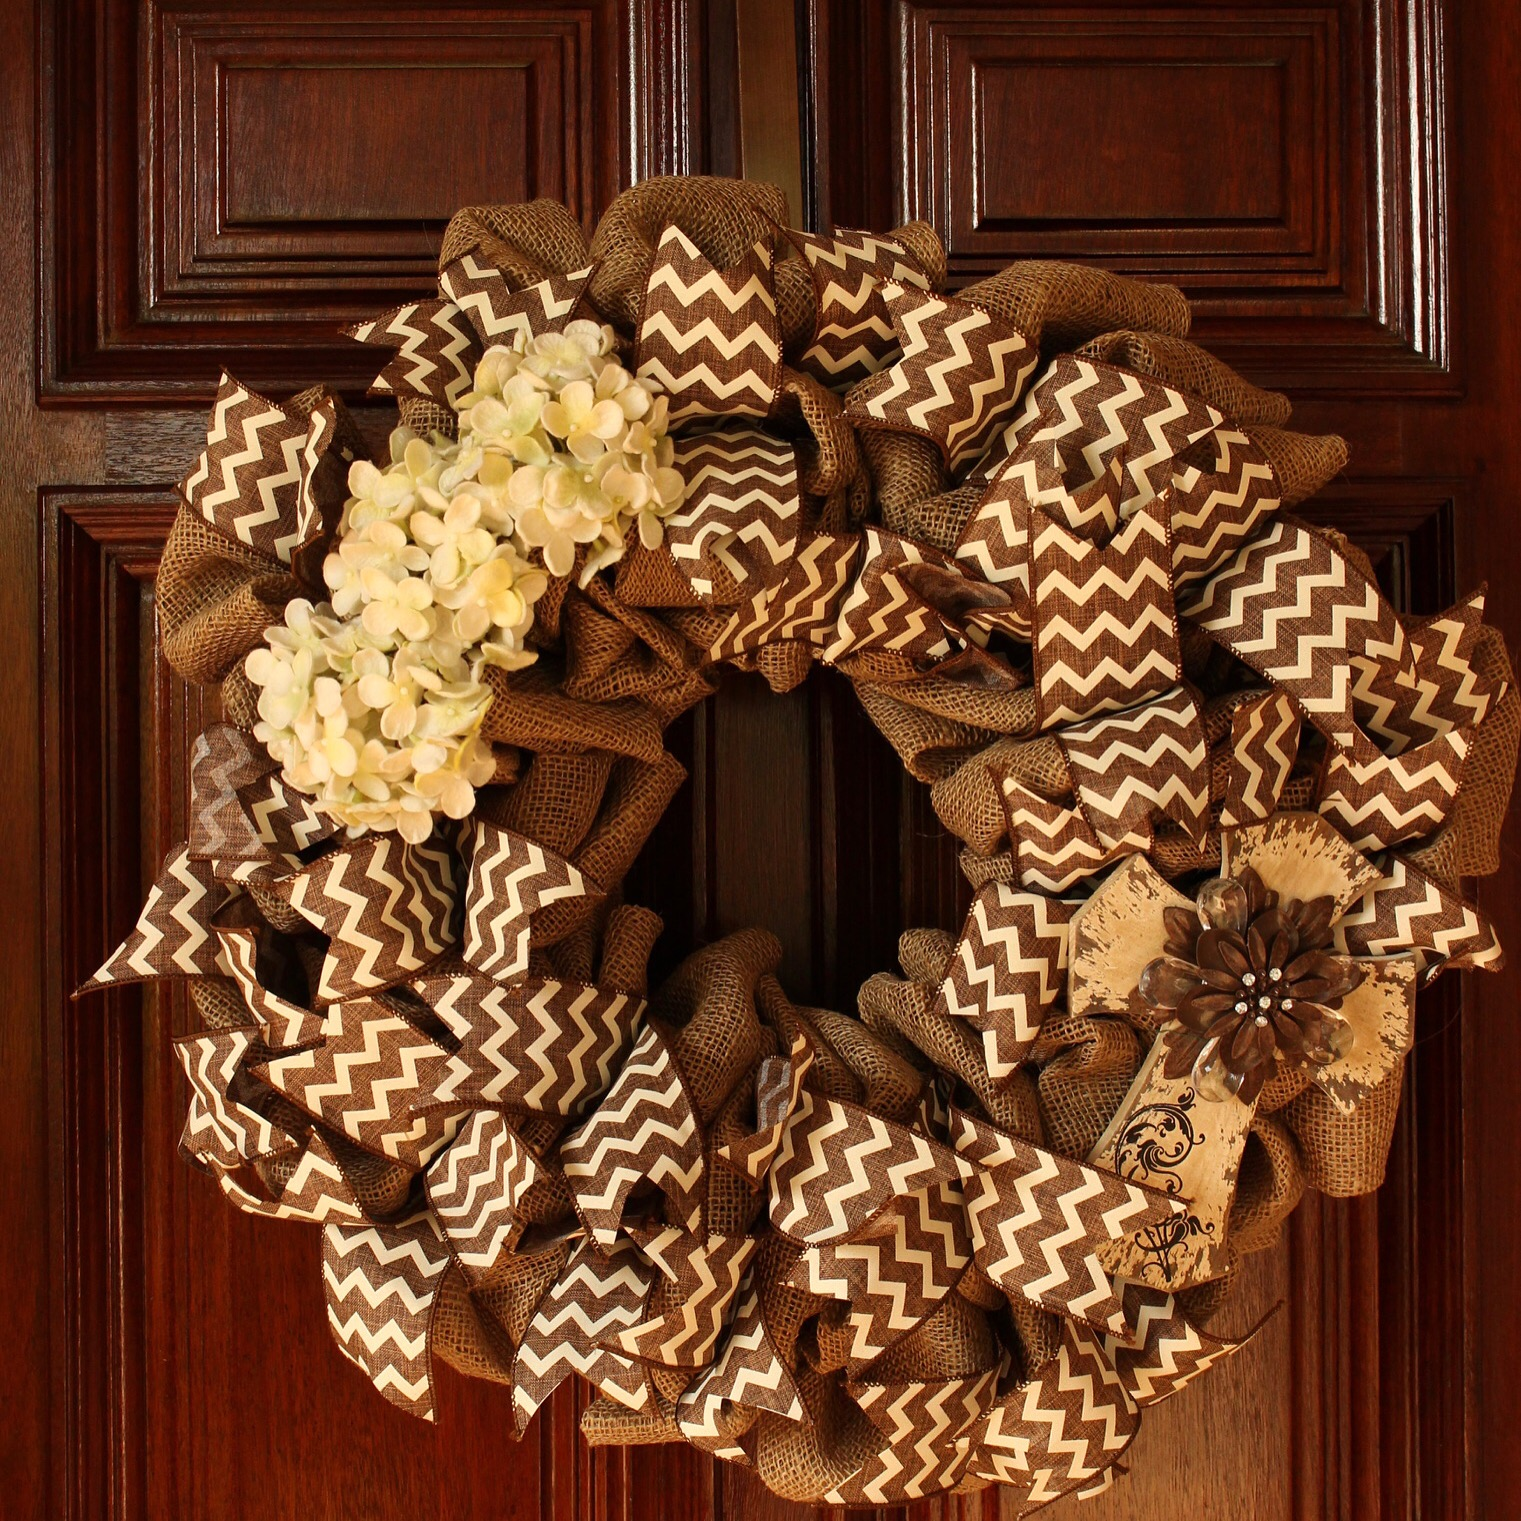 Burlap Wreath with Chevron Ribbon Detail, Flowers and Wooden Cross by Whimsical Wreaths by Amy